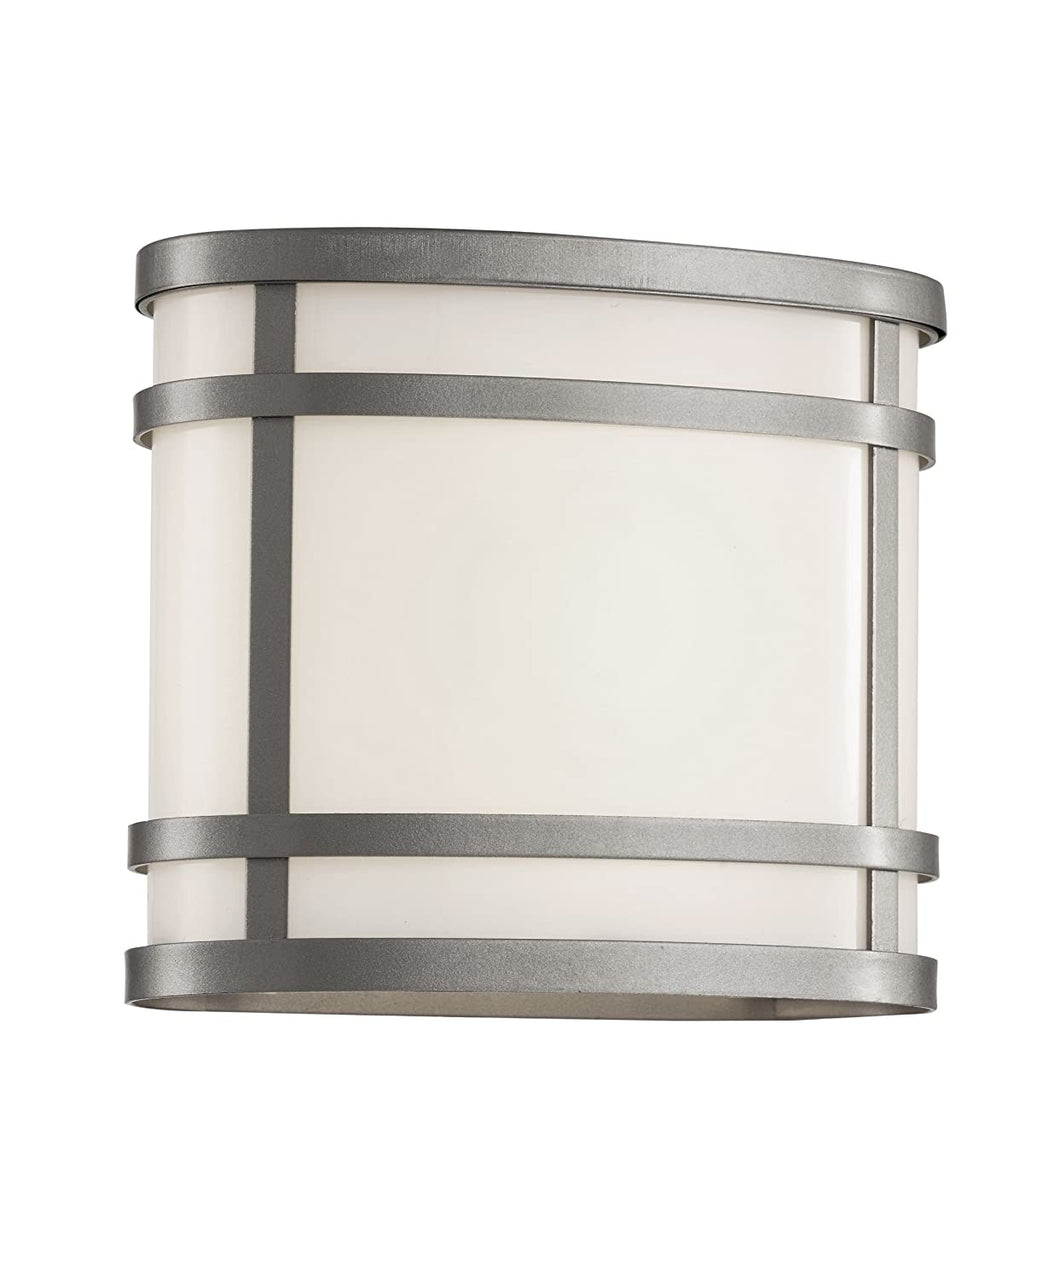 ZEPHYR 1-LIGHT 8 INCH SILVER OUTDOOR WALL LANTERN IN FROSTED GLASS #40200-SL